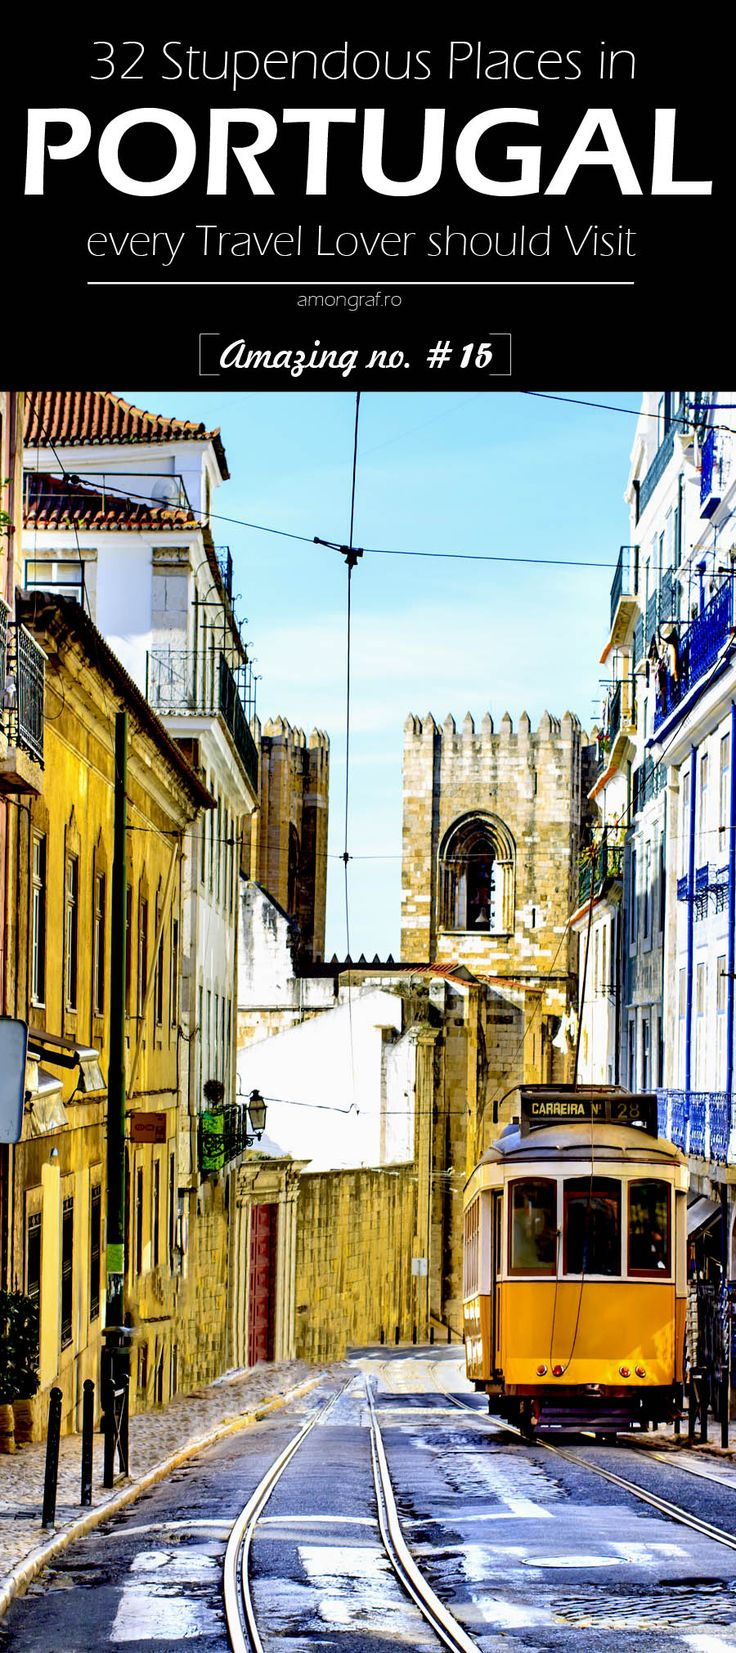 32 Stupendous Places in Portugal every Travel Lover should Visit #Portugal #Travel